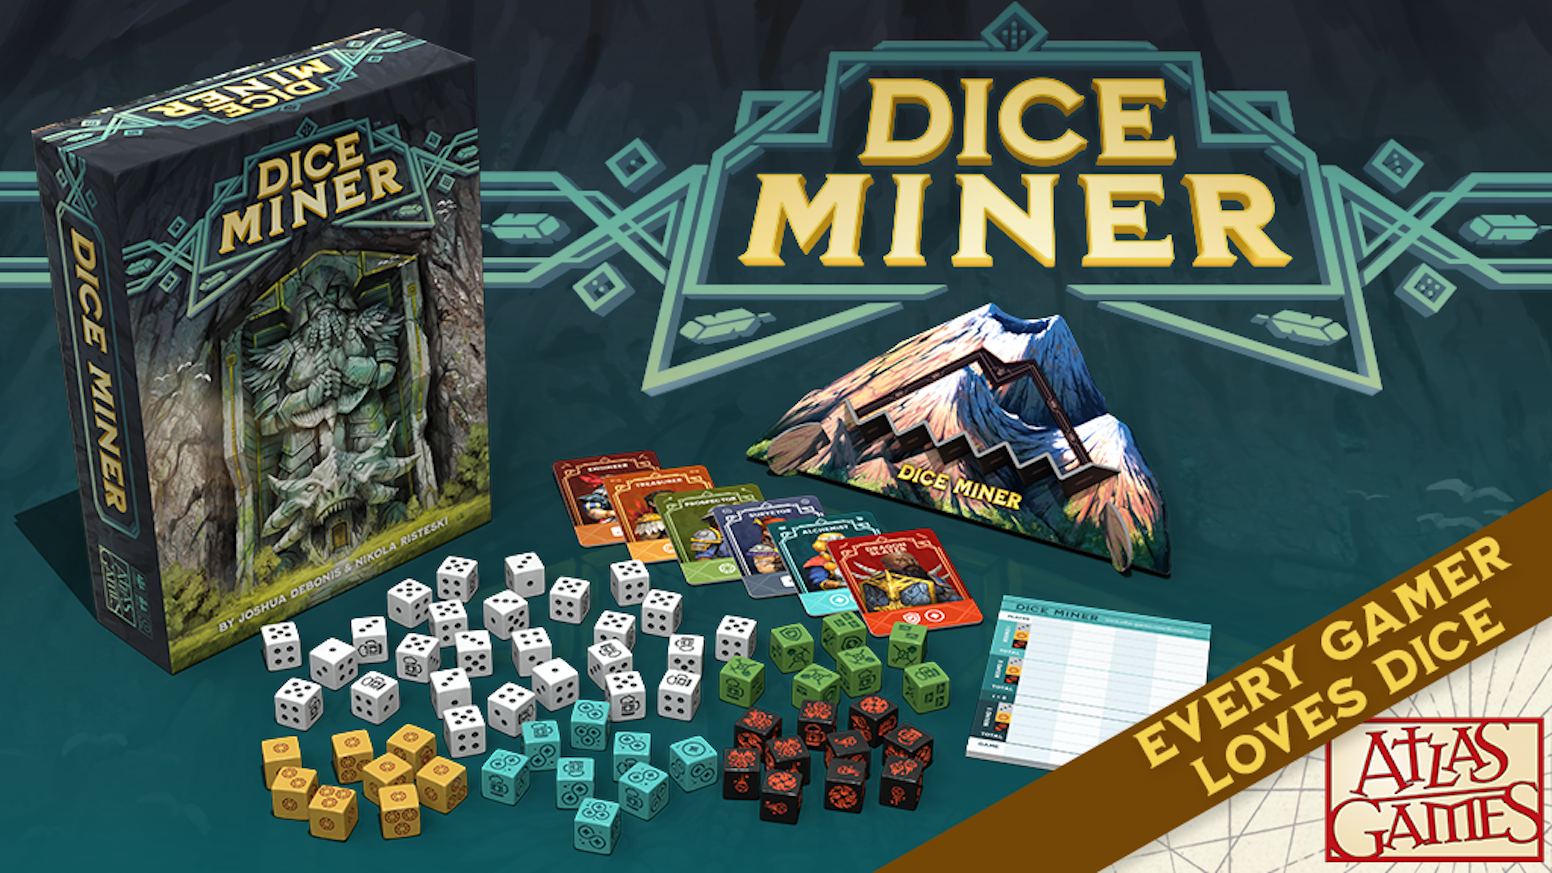 Draft the dice you covet, add them to your hoard, and push your luck!